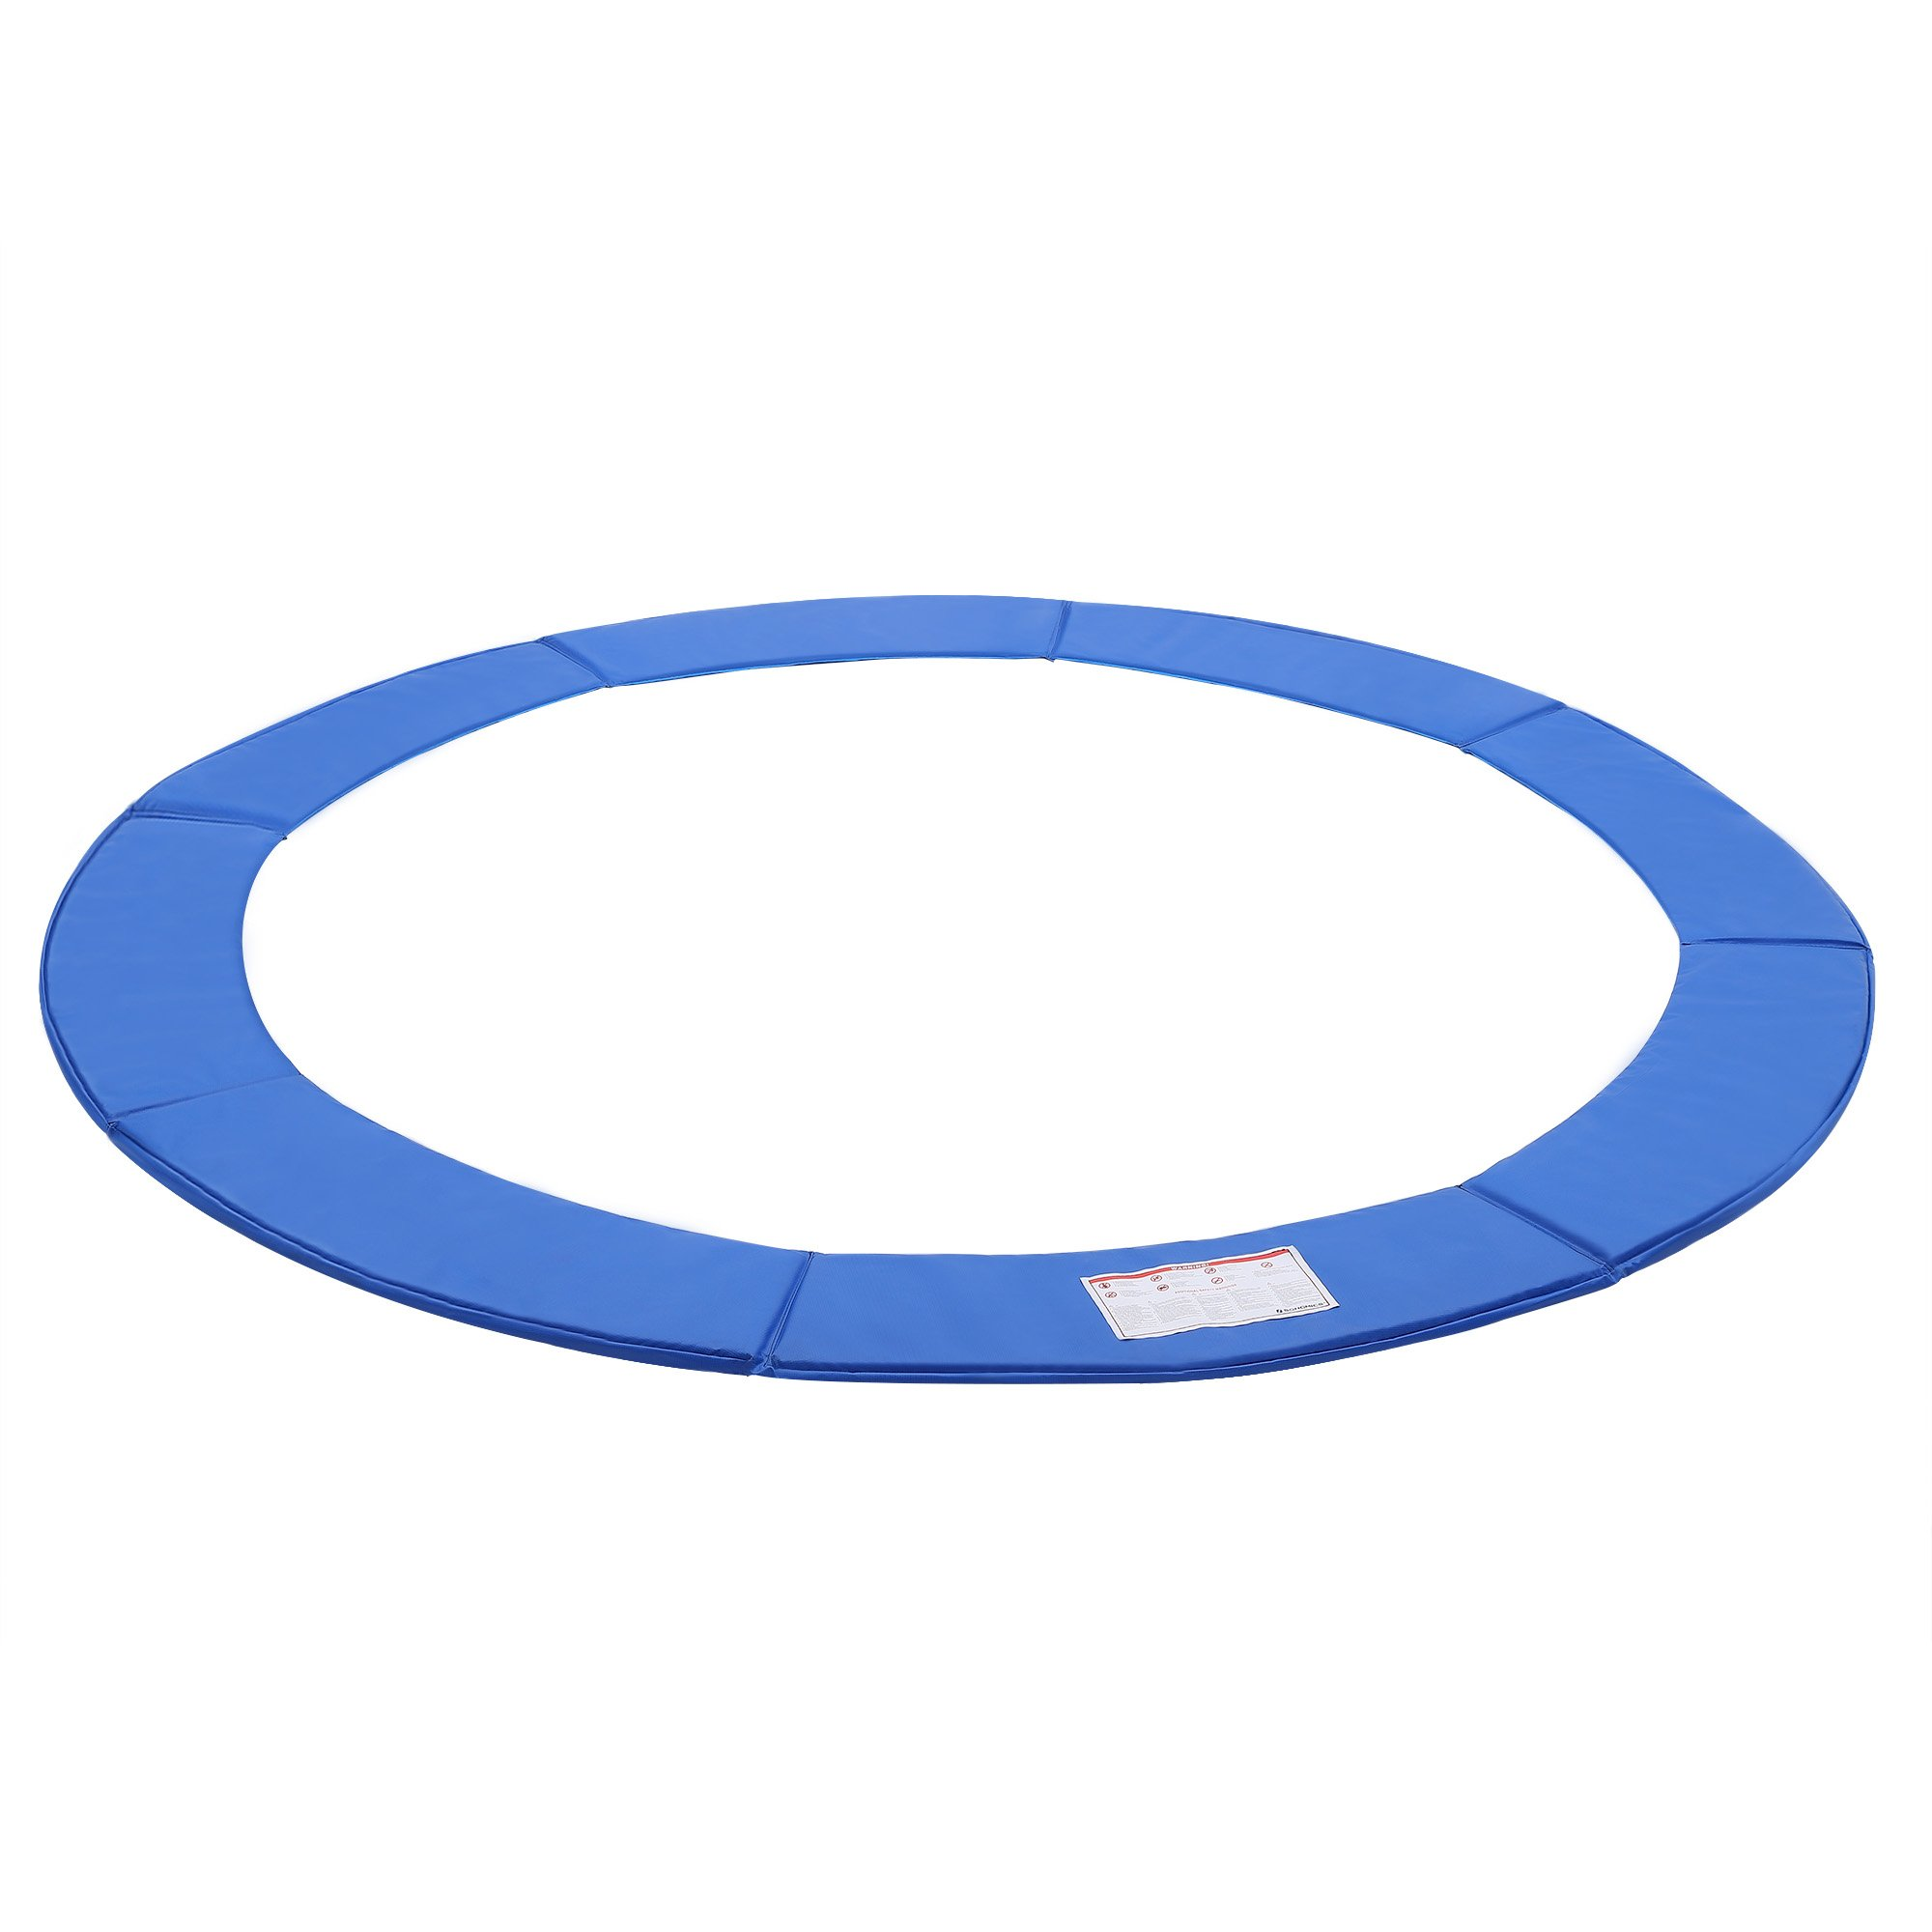 SONGMICS 8FT Replacement Trampoline Safety Pad, Waterproof Surround Spring Cover, Round Foam Pad Blue USTP8FT